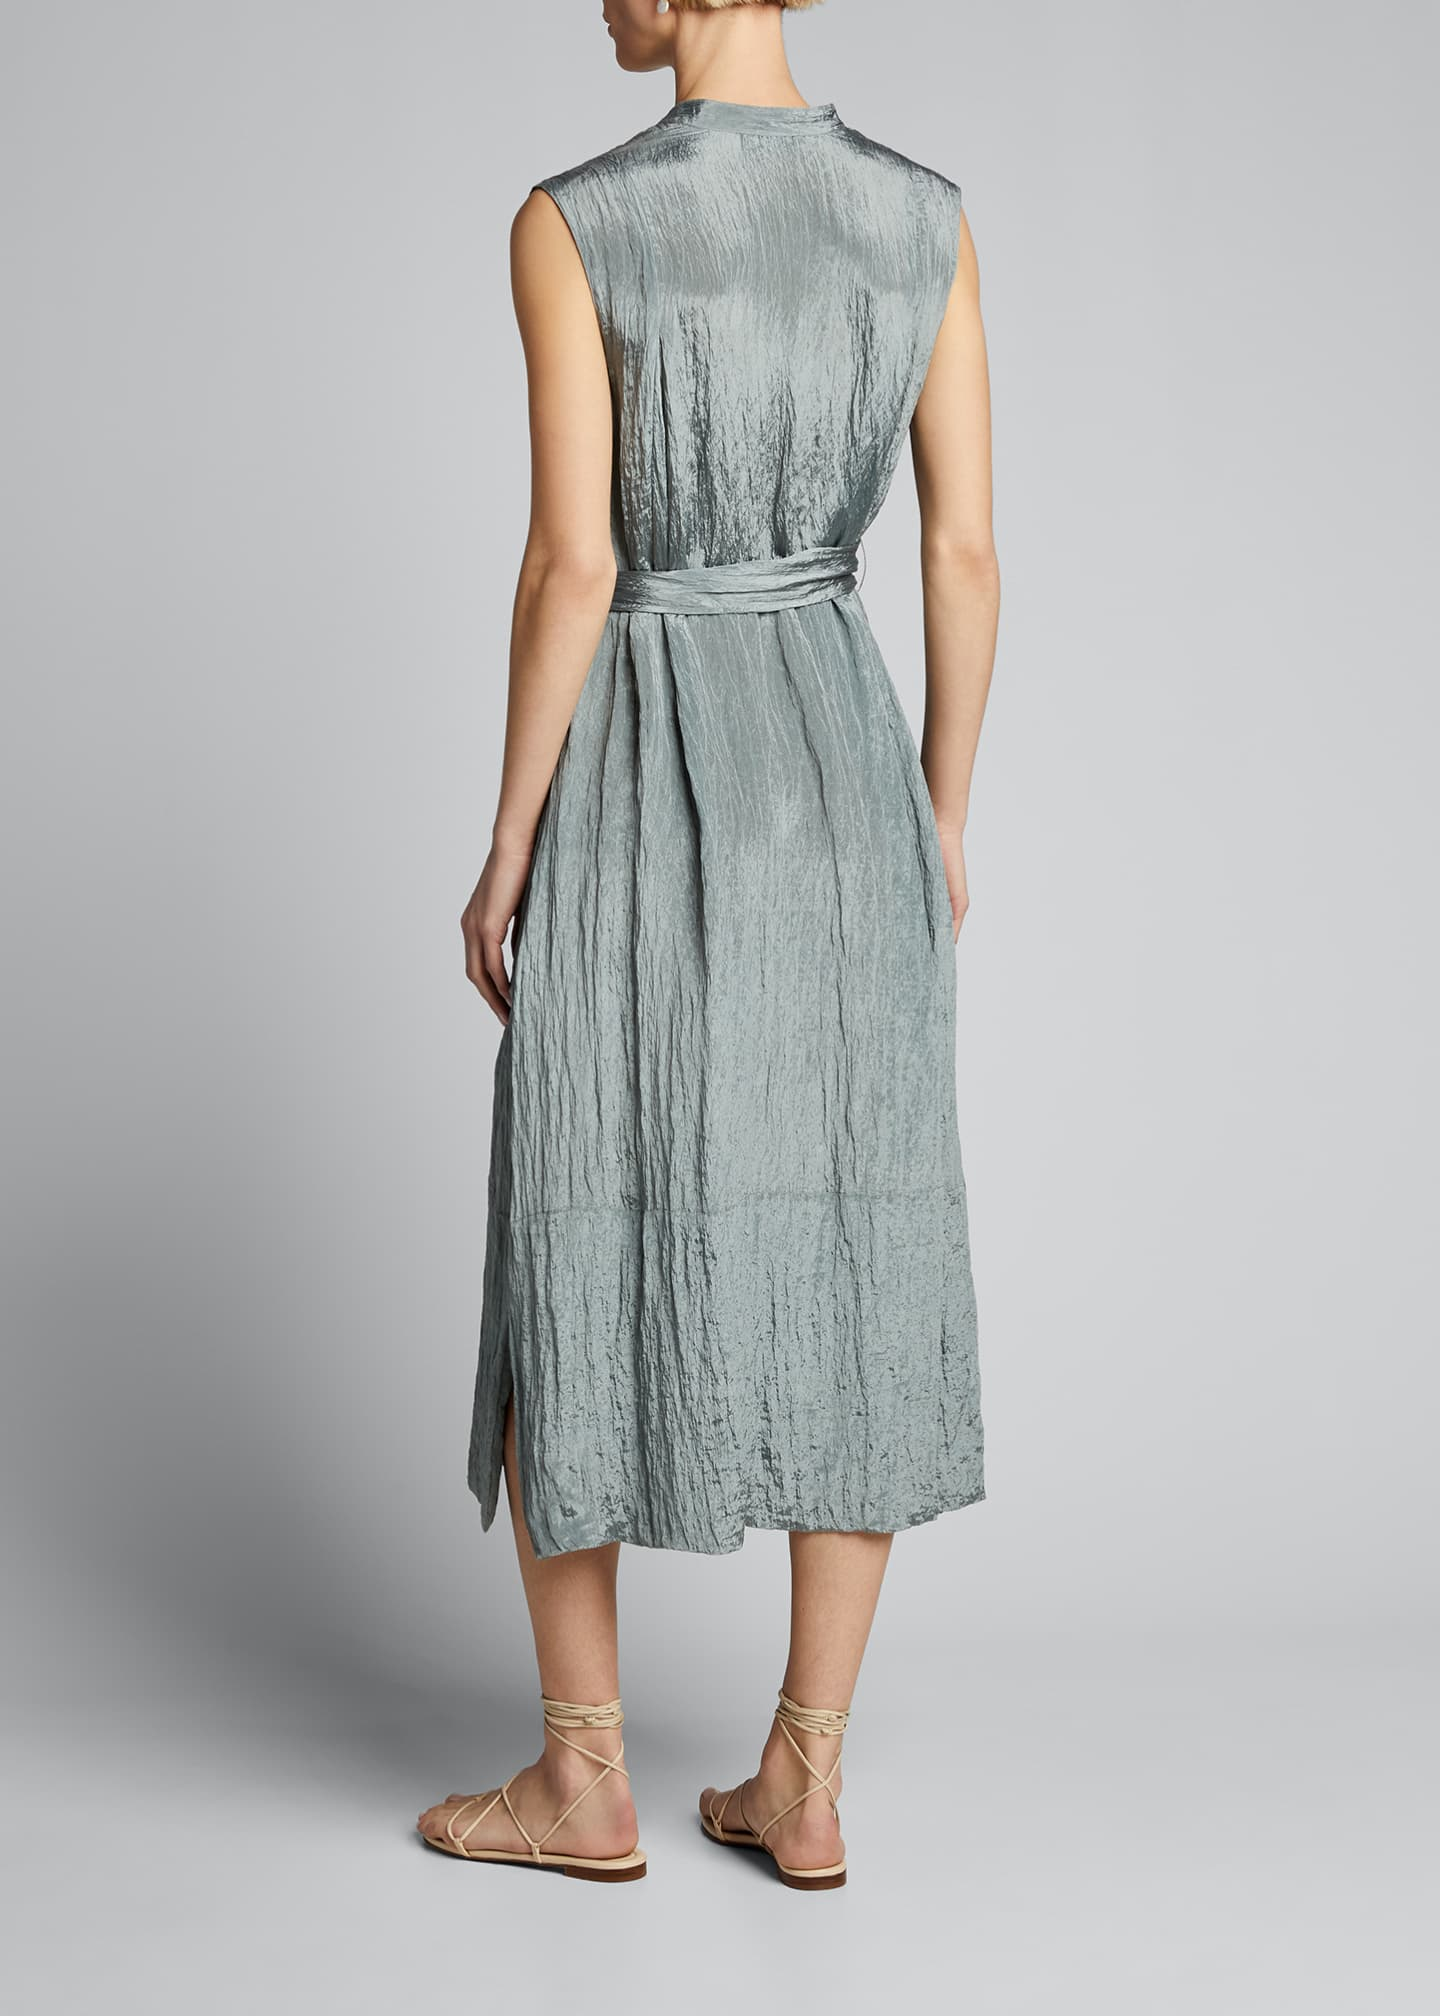 Image 2 of 4: Sleeveless Textured Popover Dress